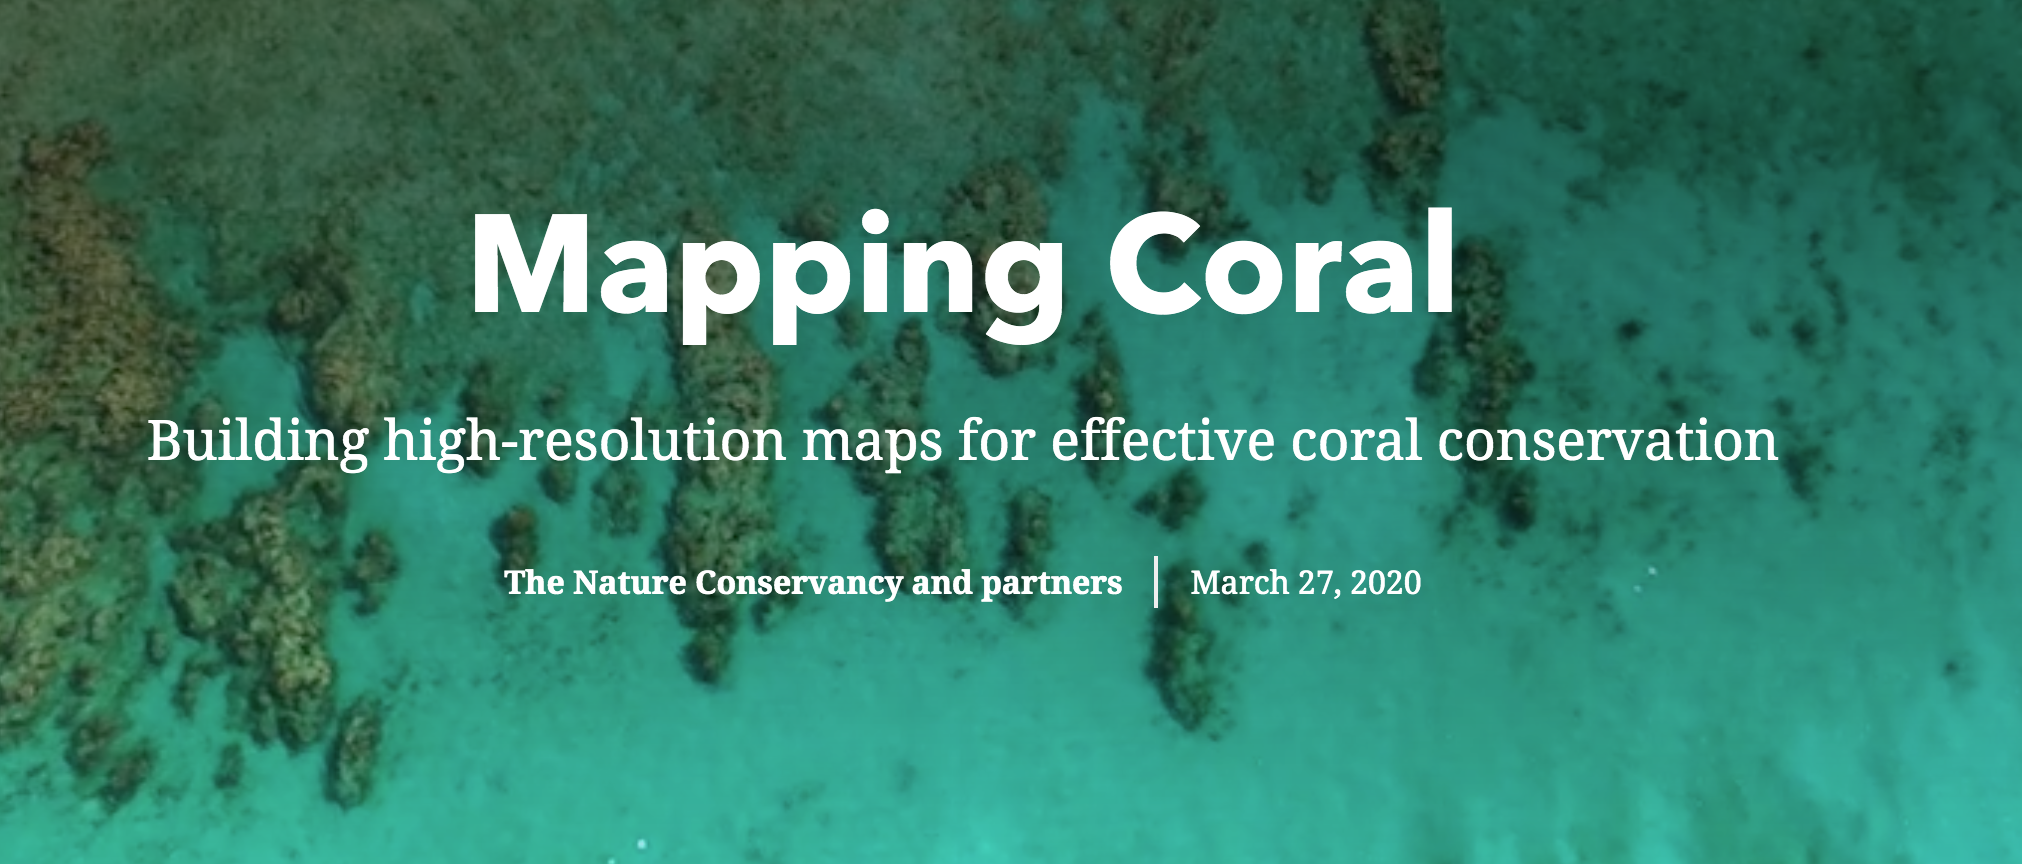 Mapping Coral